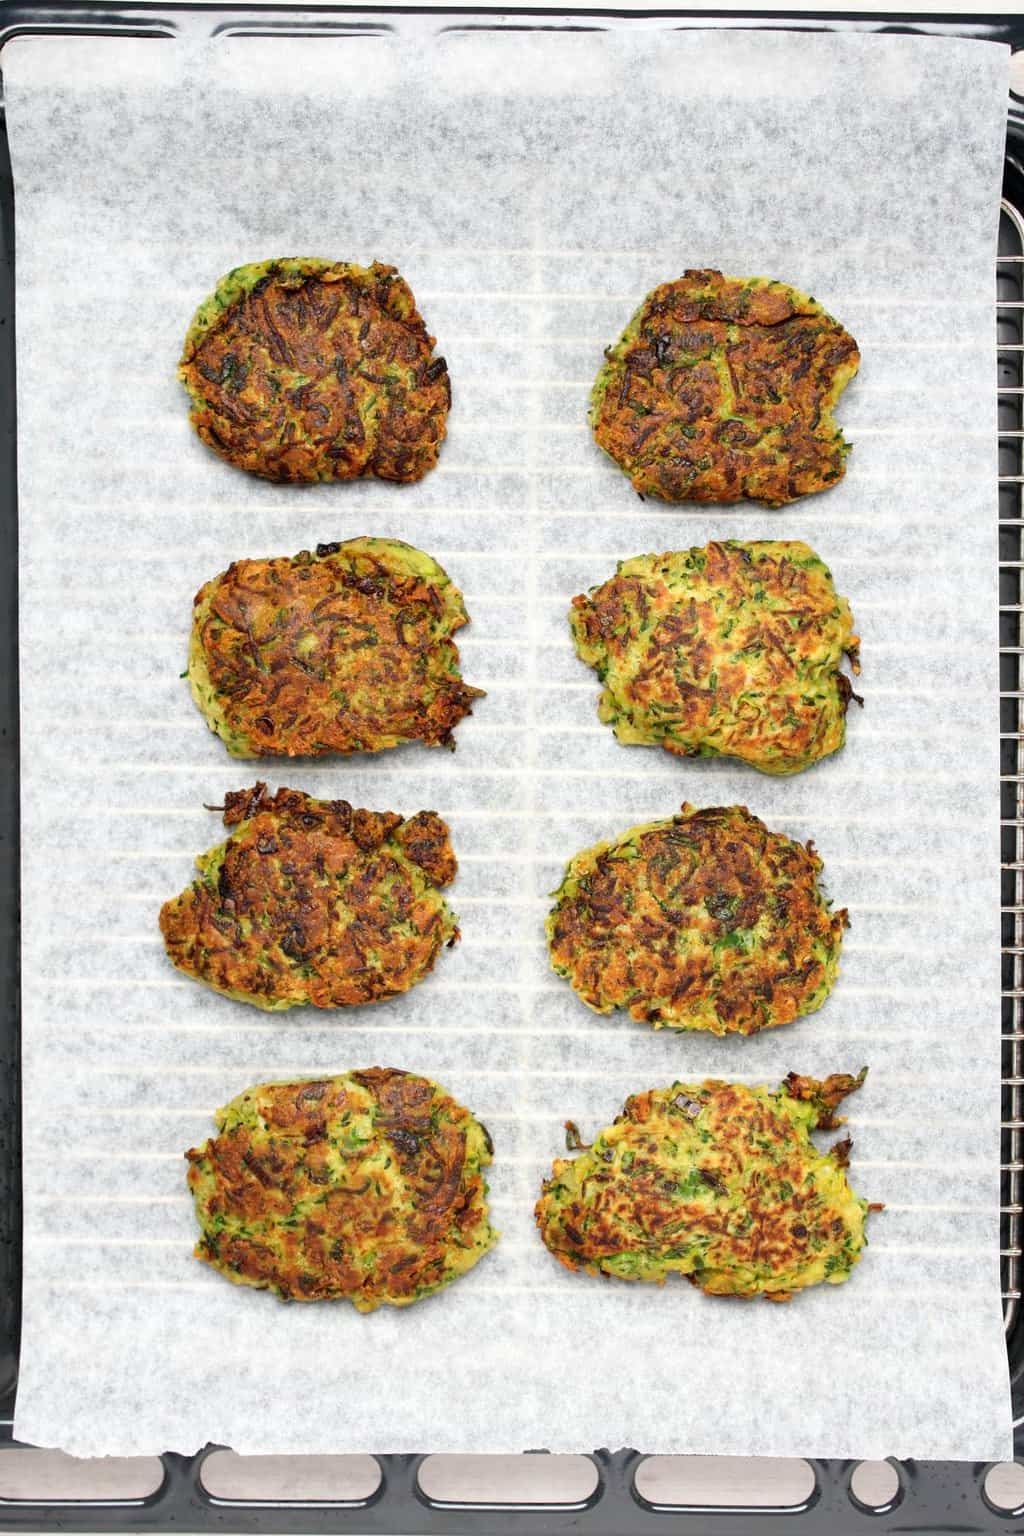 Vegan zucchini fritters on a parchment lined oven tray.